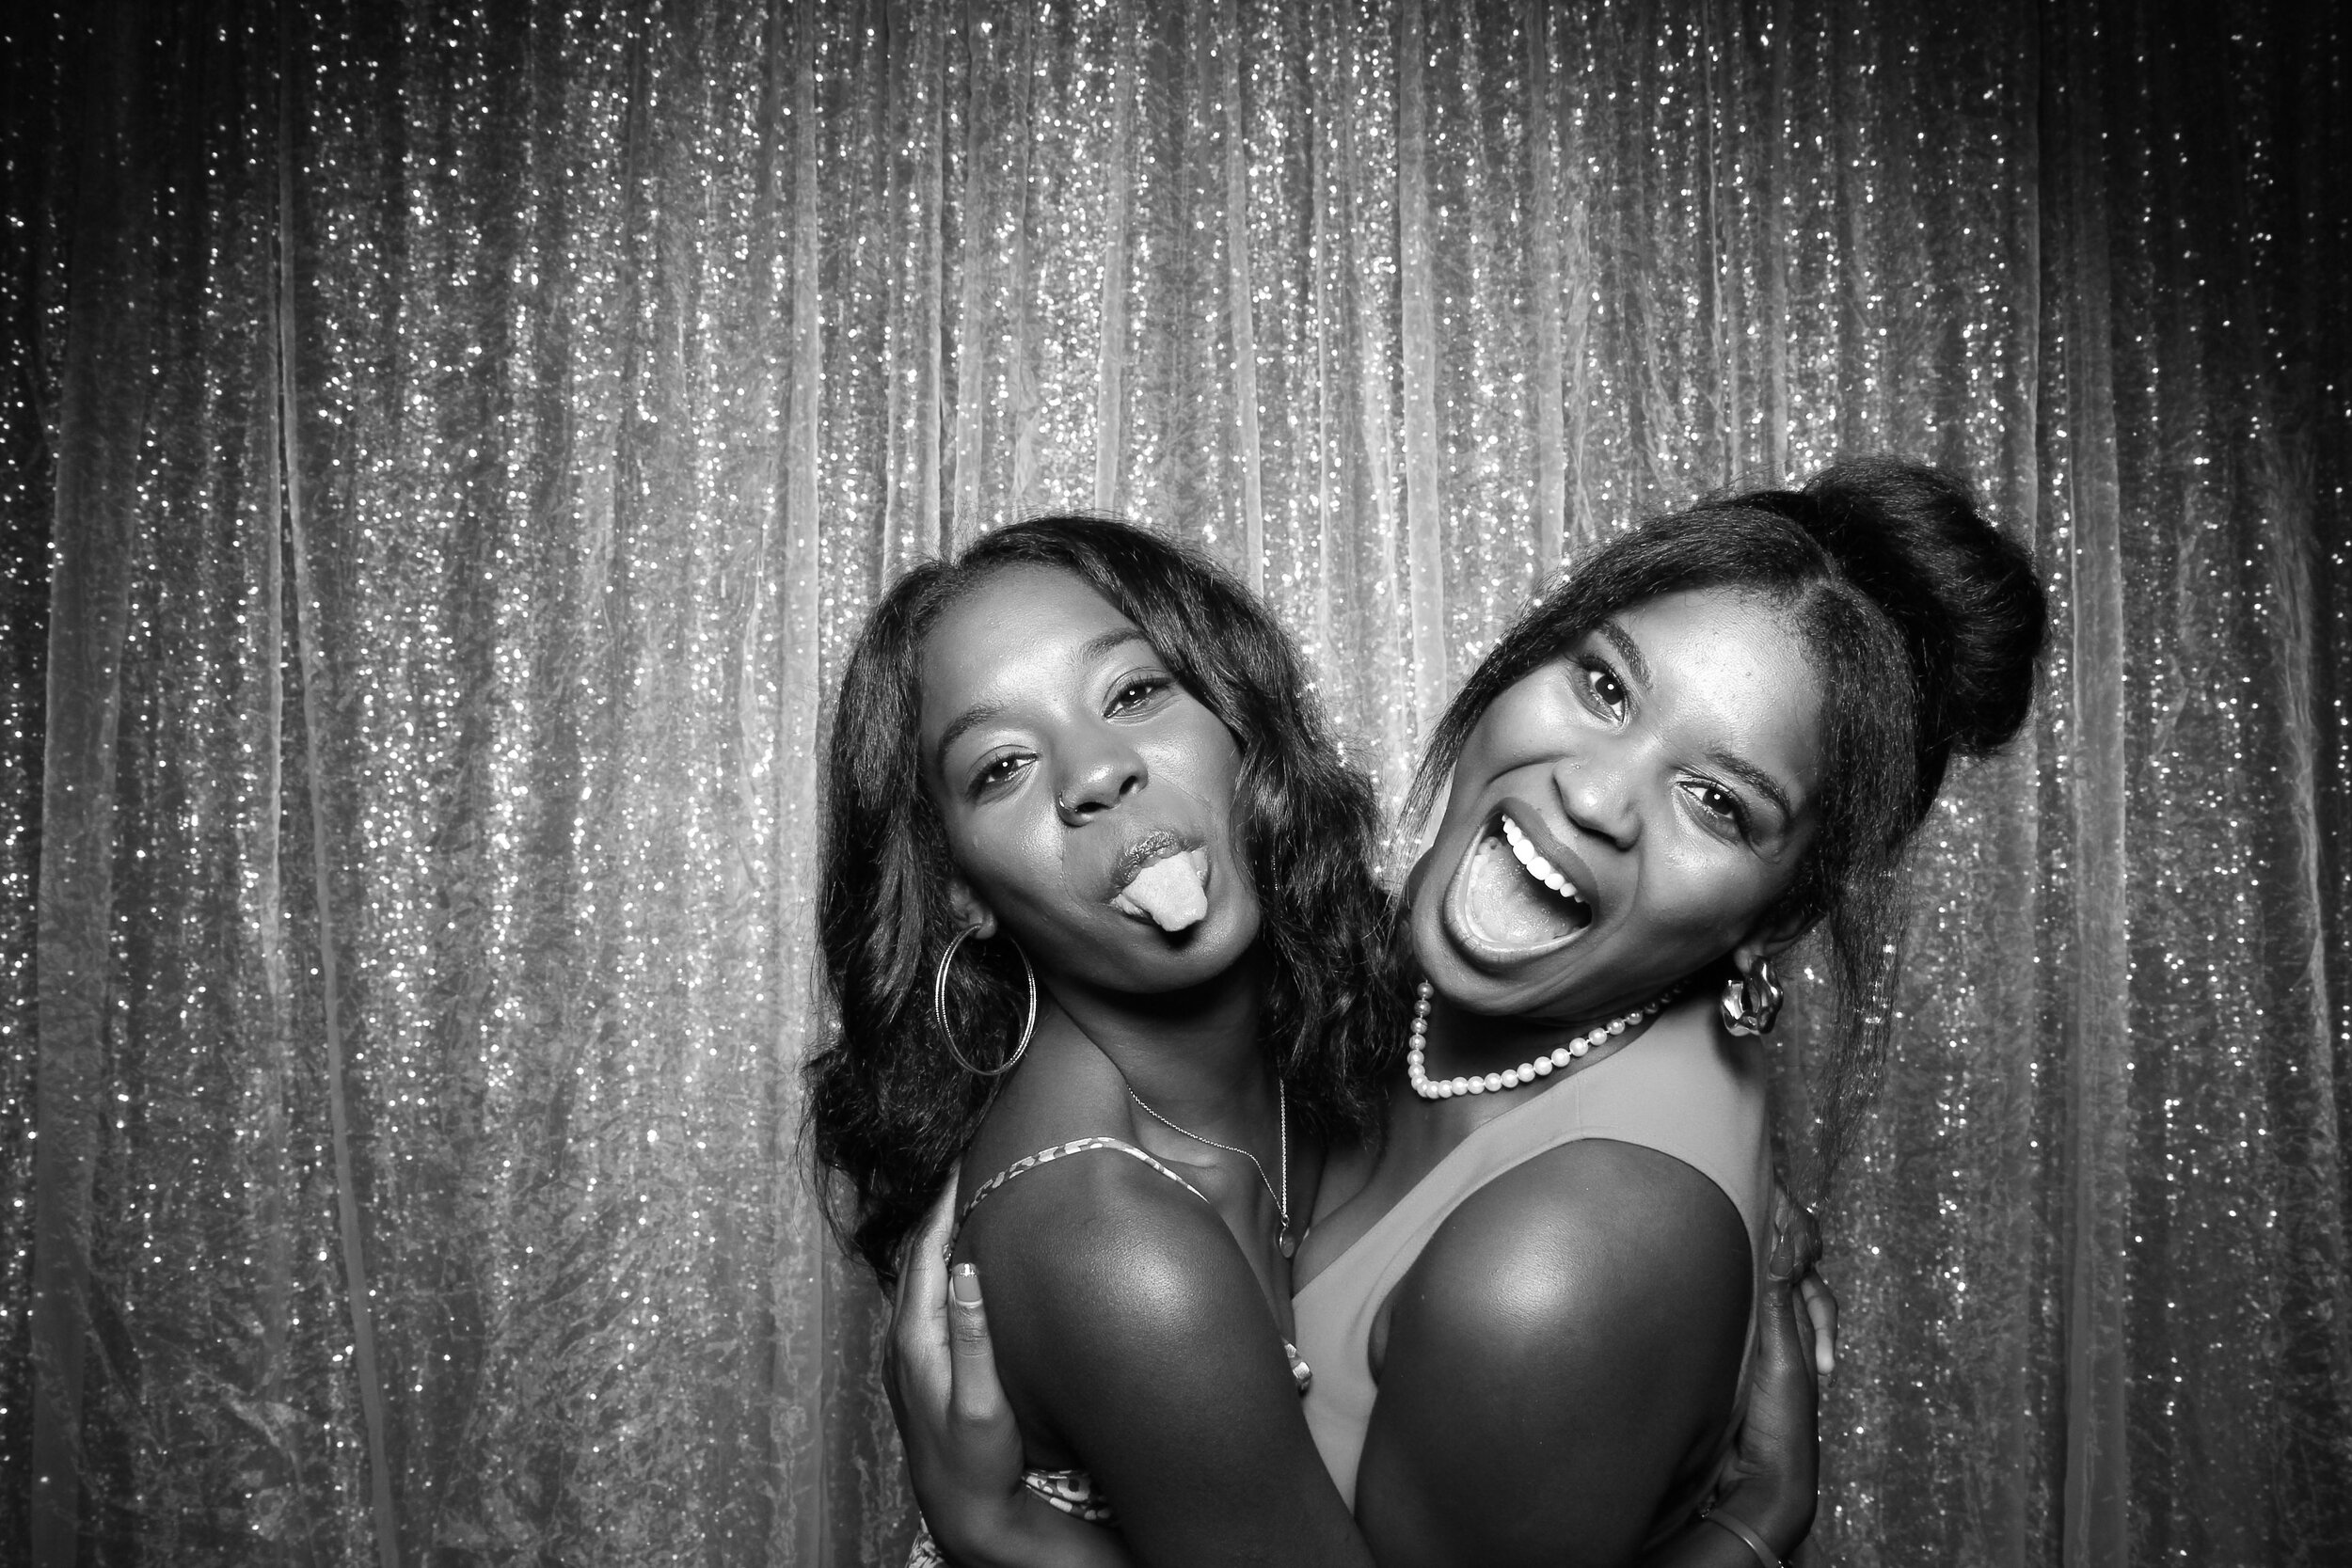 Ravisloe_Country_Club_Wedding_Photo_Booth_09.jpg